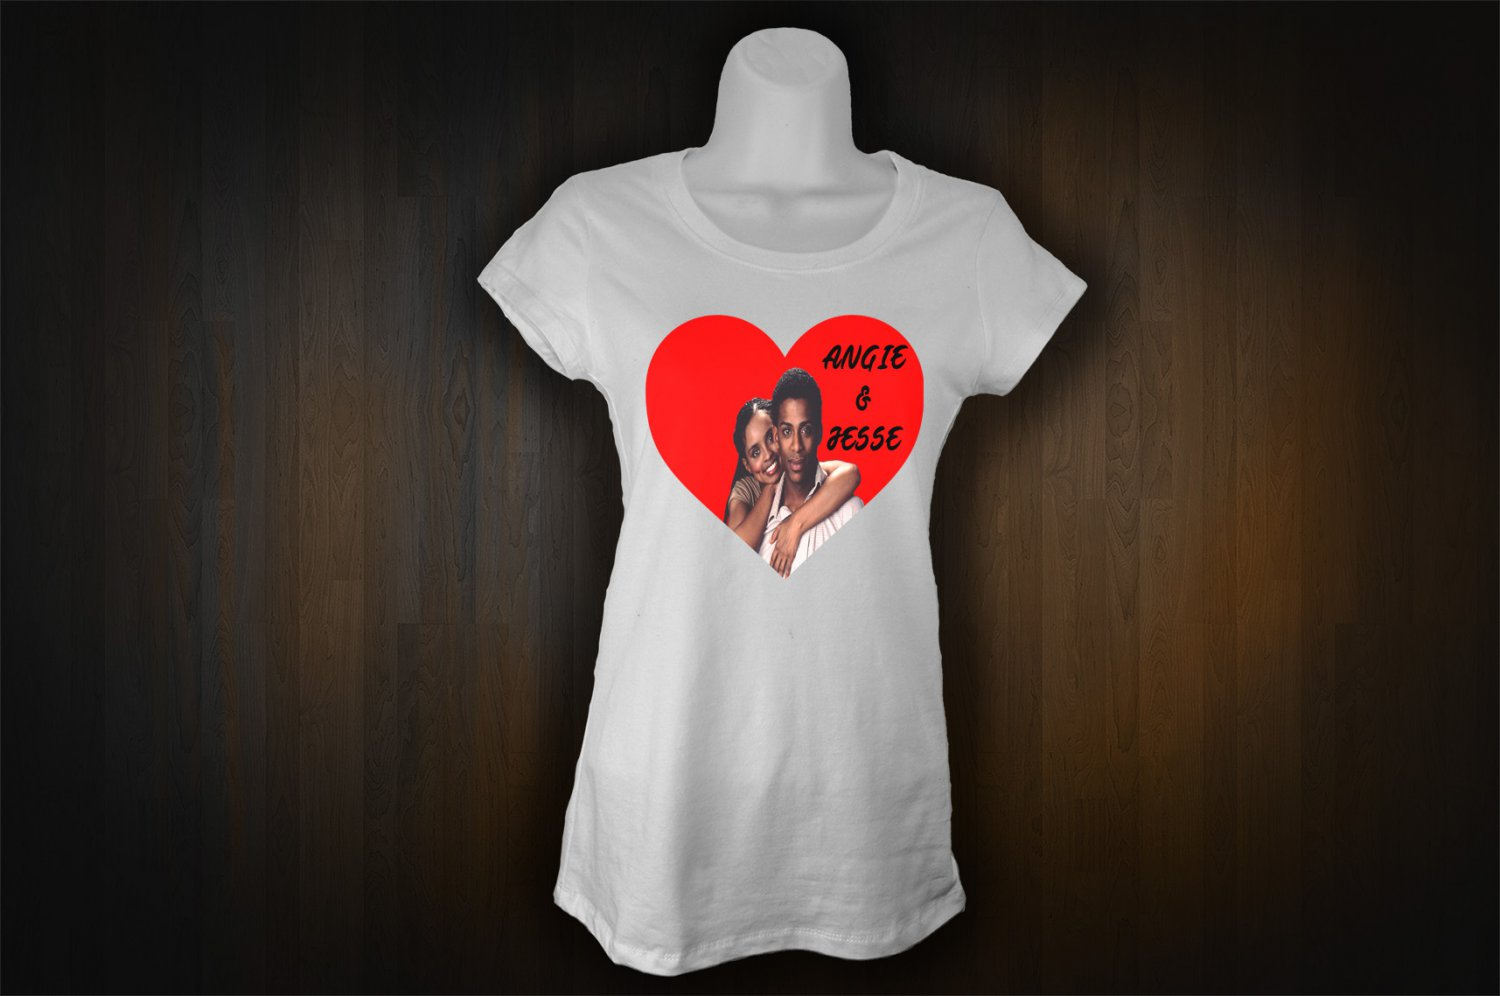 ANGIE AND JESSE T-SHIRT(3X-LARGE) ALL MY CHILDREN